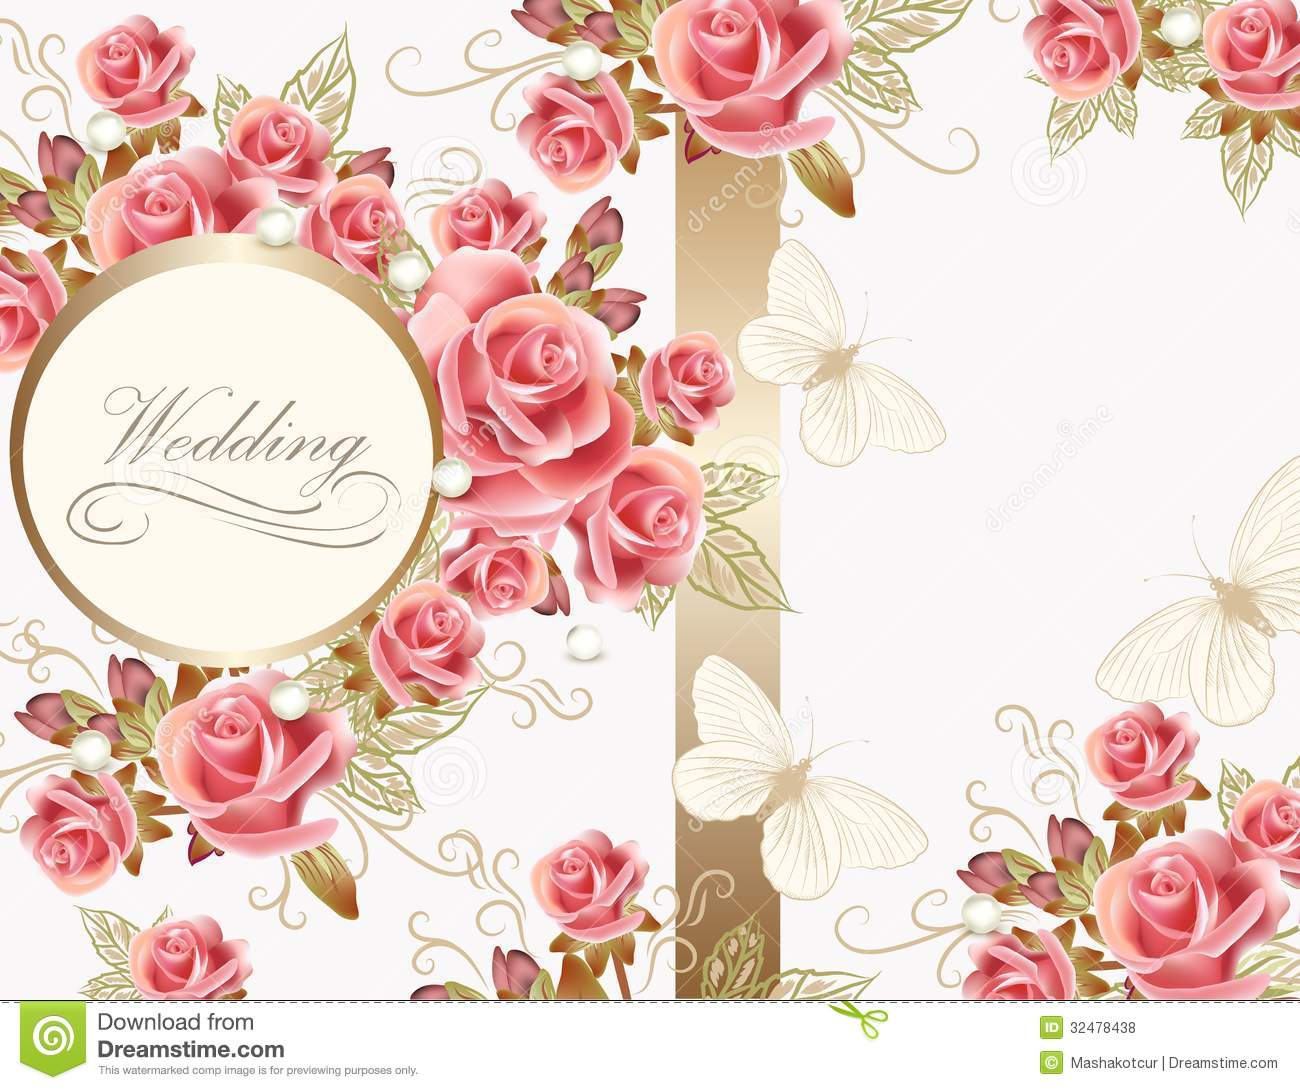 Wedding vector greeting card with pink roses in vintage style for ...